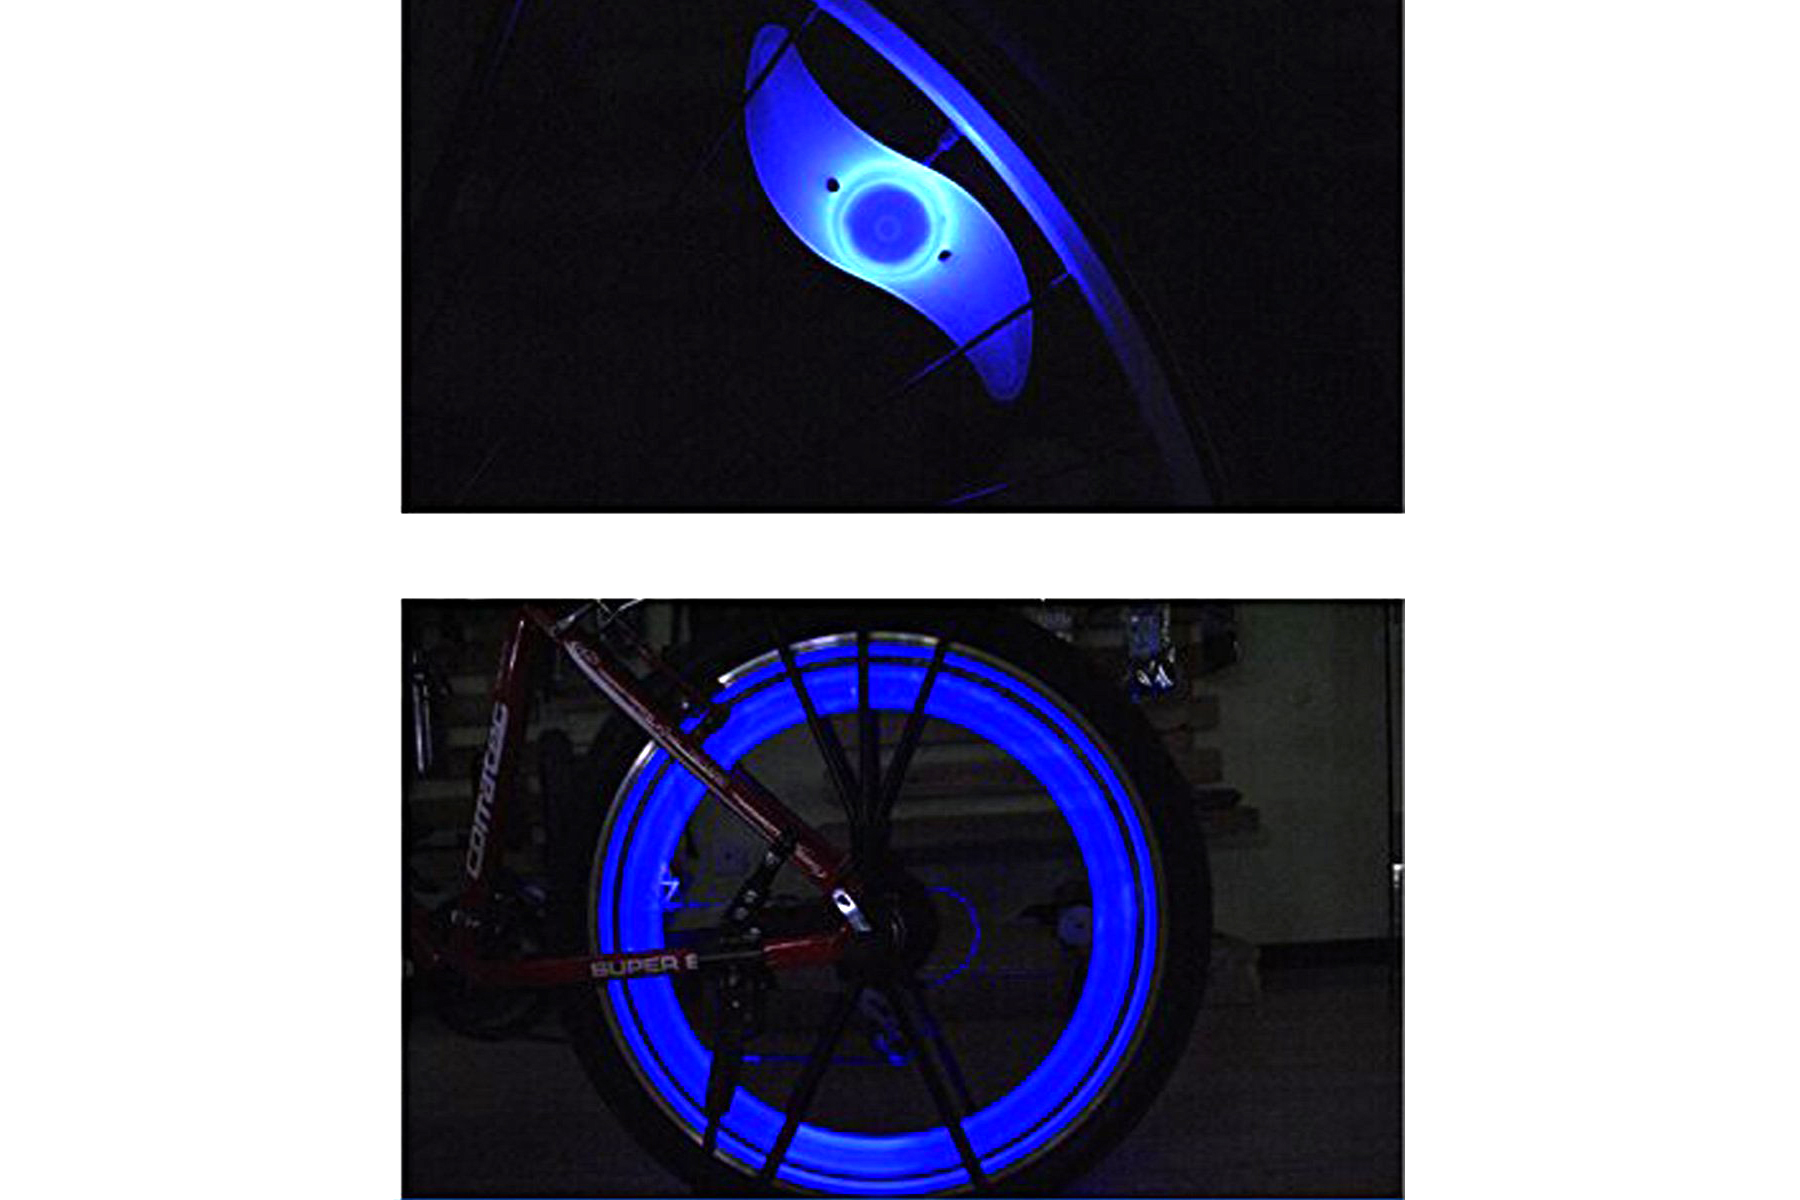 LED Light Cycle, 5 Color Count - 4.5 stars - $12 (Prime)